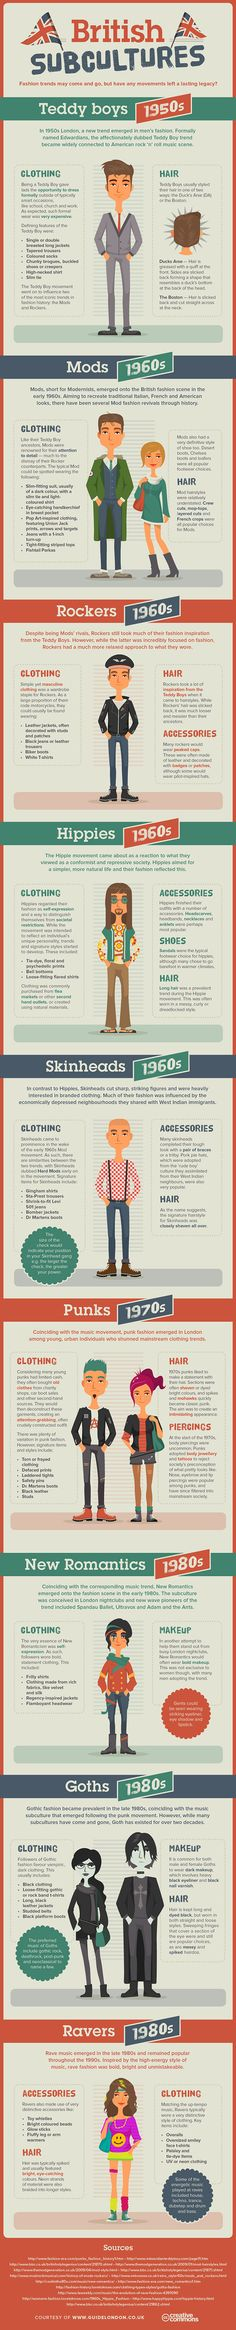 Fashion infographic & data visualisation Guide London Explores History of British Fashion Infographic Description We feature mods, rockers and hippies in Beauty And Fashion, Mod Fashion, Fashion Moda, Teen Fashion, Vintage Fashion, Fashion Guide, Fashion Check, Catwalk Fashion, Fashion 2016